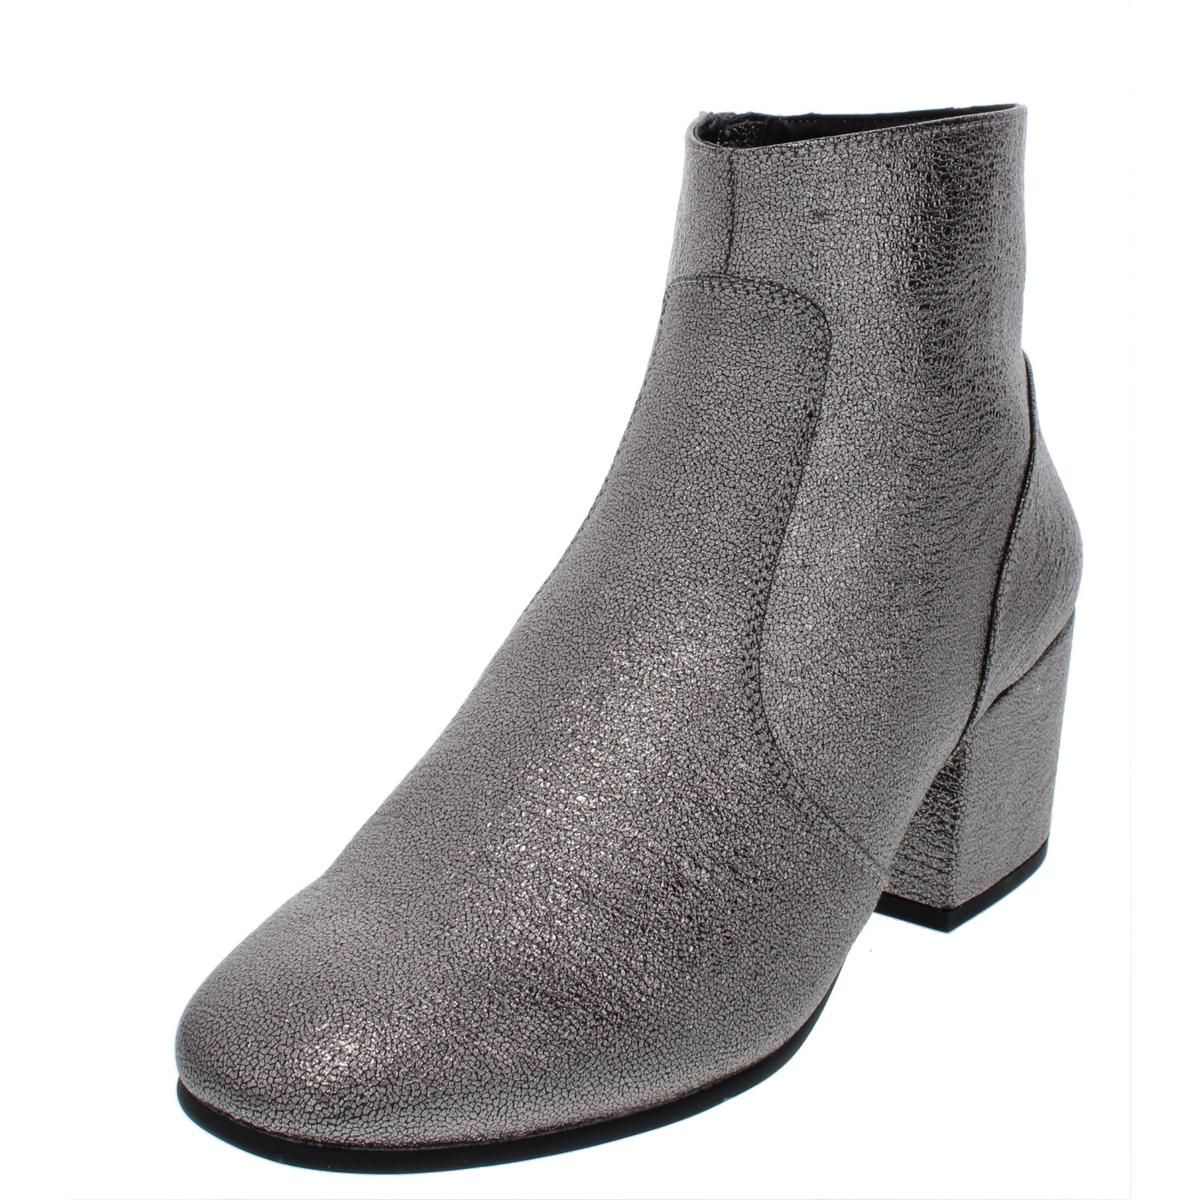 13ad516a592 Details about Steve Madden Womens Kristina Silver Ankle Boots Shoes 7.5  Medium (B